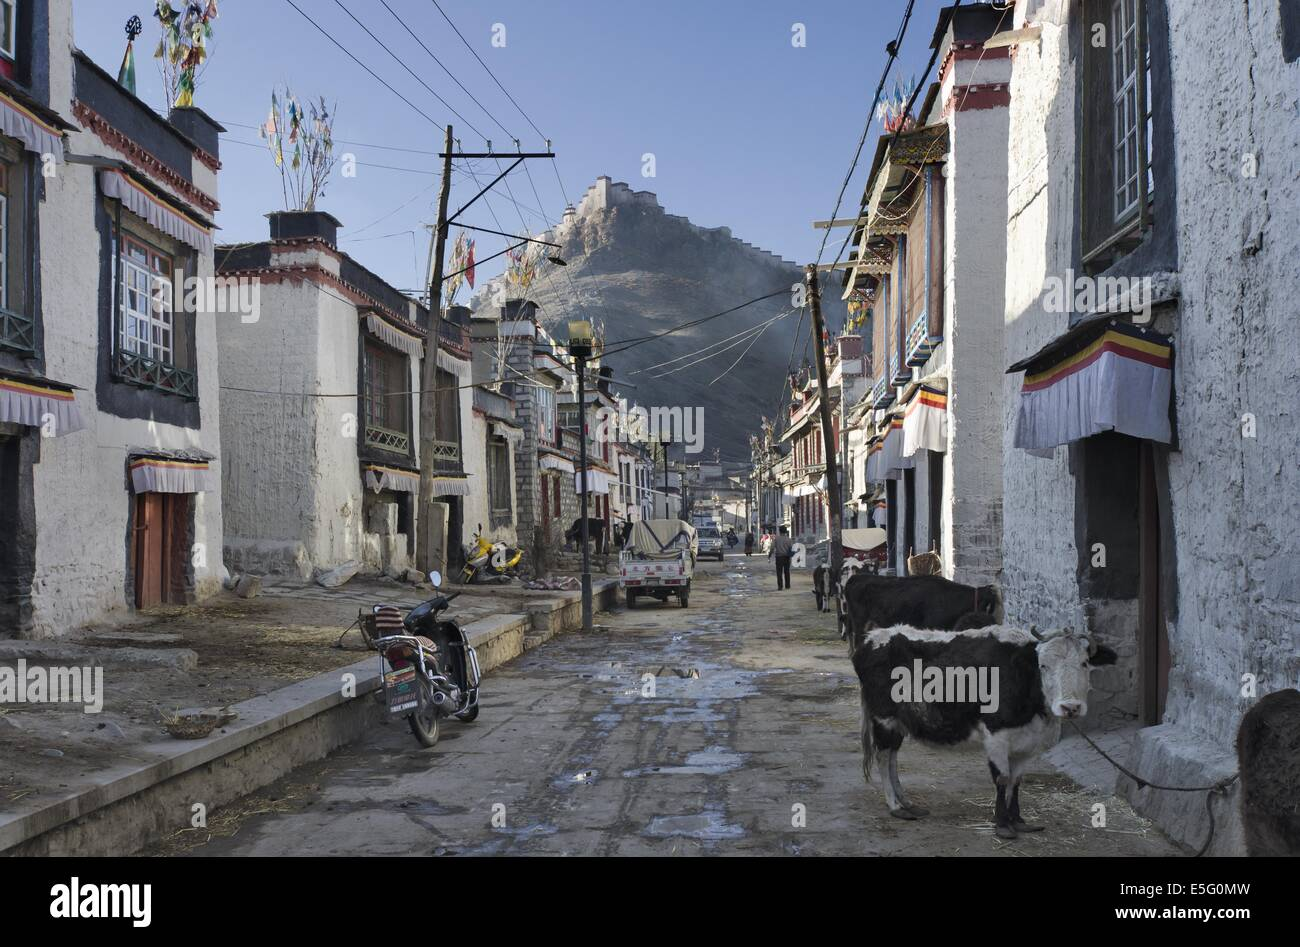 Traditional houses in the Old town of Gyantse, Tibet, with the fort towering above - Stock Image